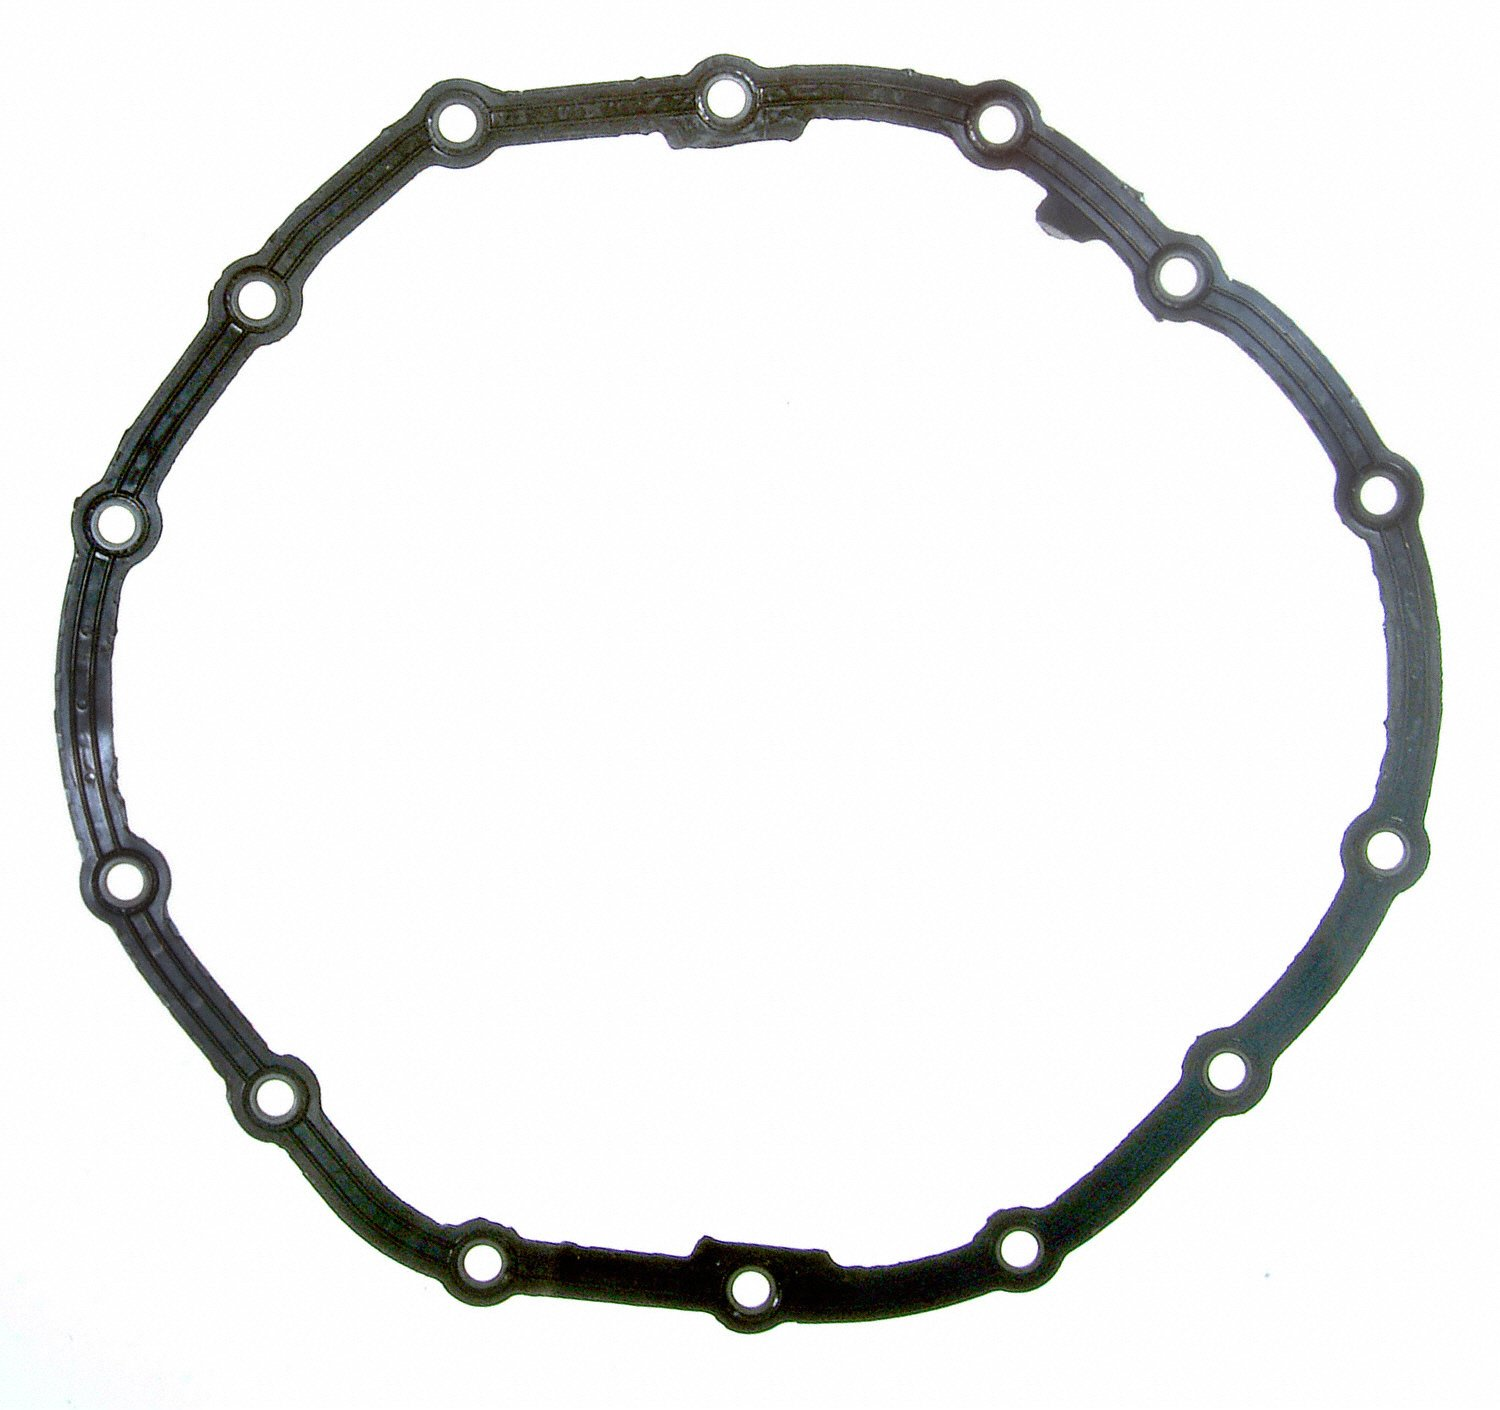 Felpro Rds55474 Axle Housing Cover Gasket For Dodge Sprinter Fuel Filter Parts Automotive